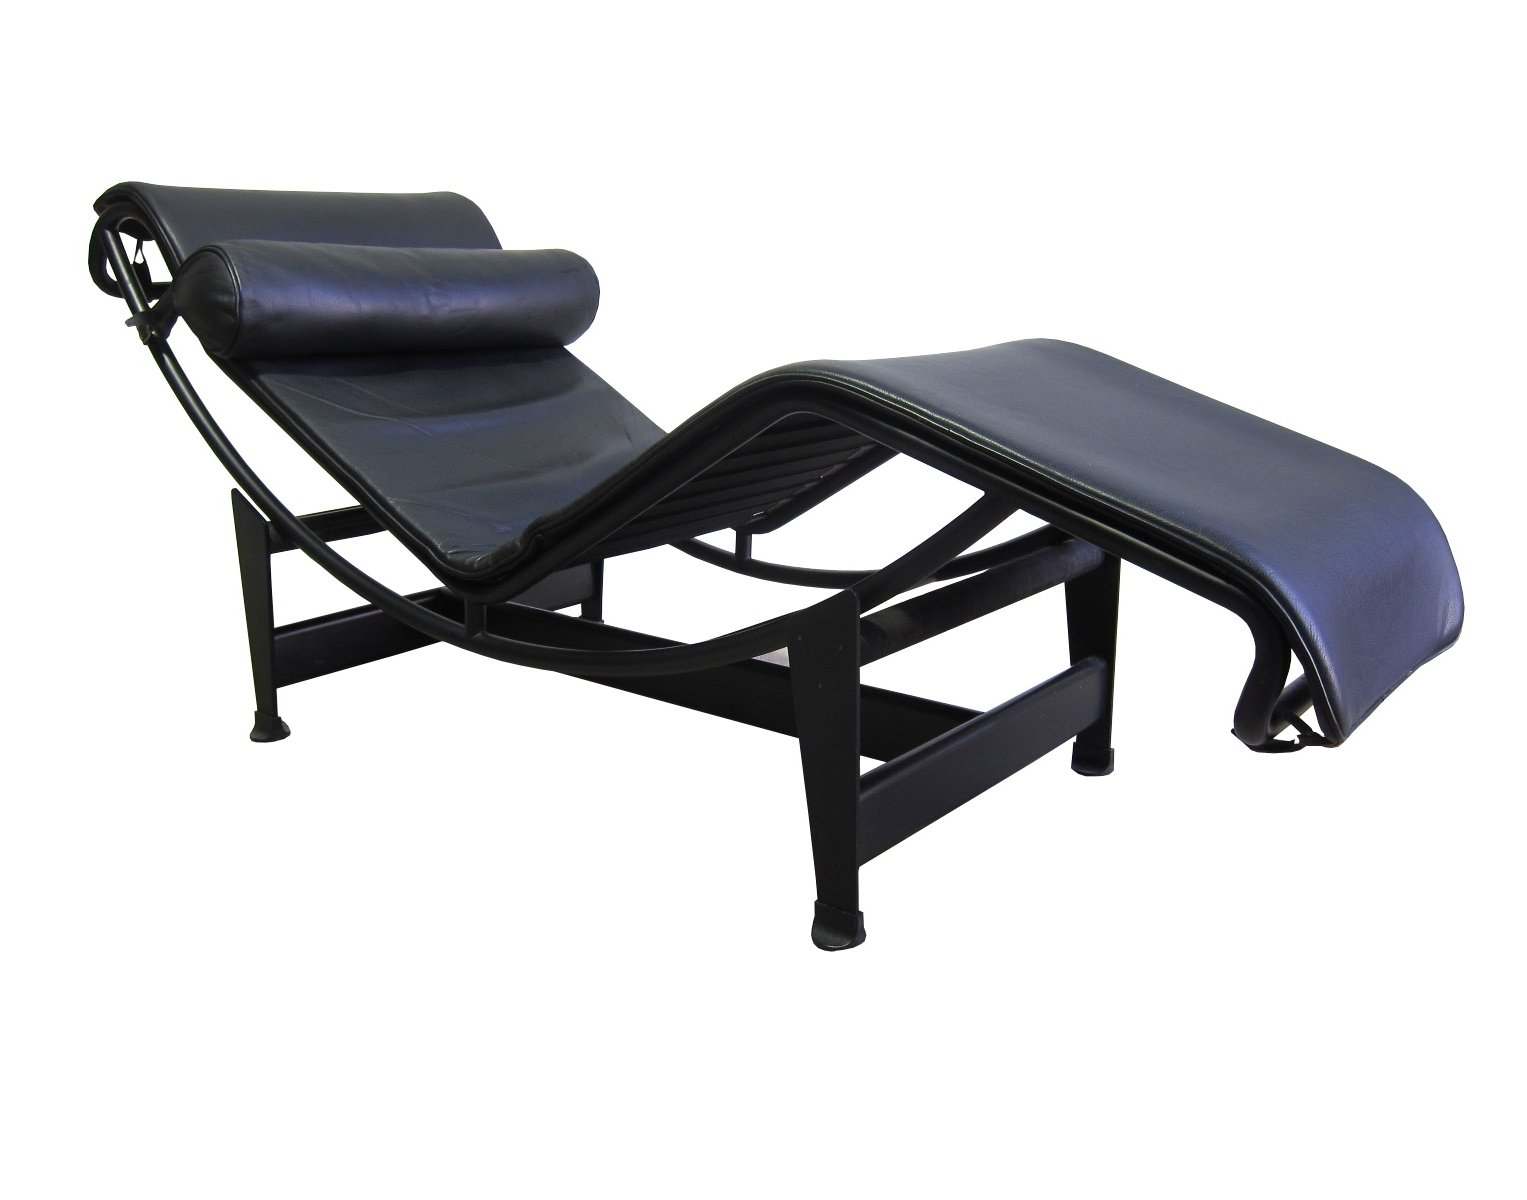 Vintage cassina lc4 39 chaise longue 39 black version 71827 for Cassina chaise lounge